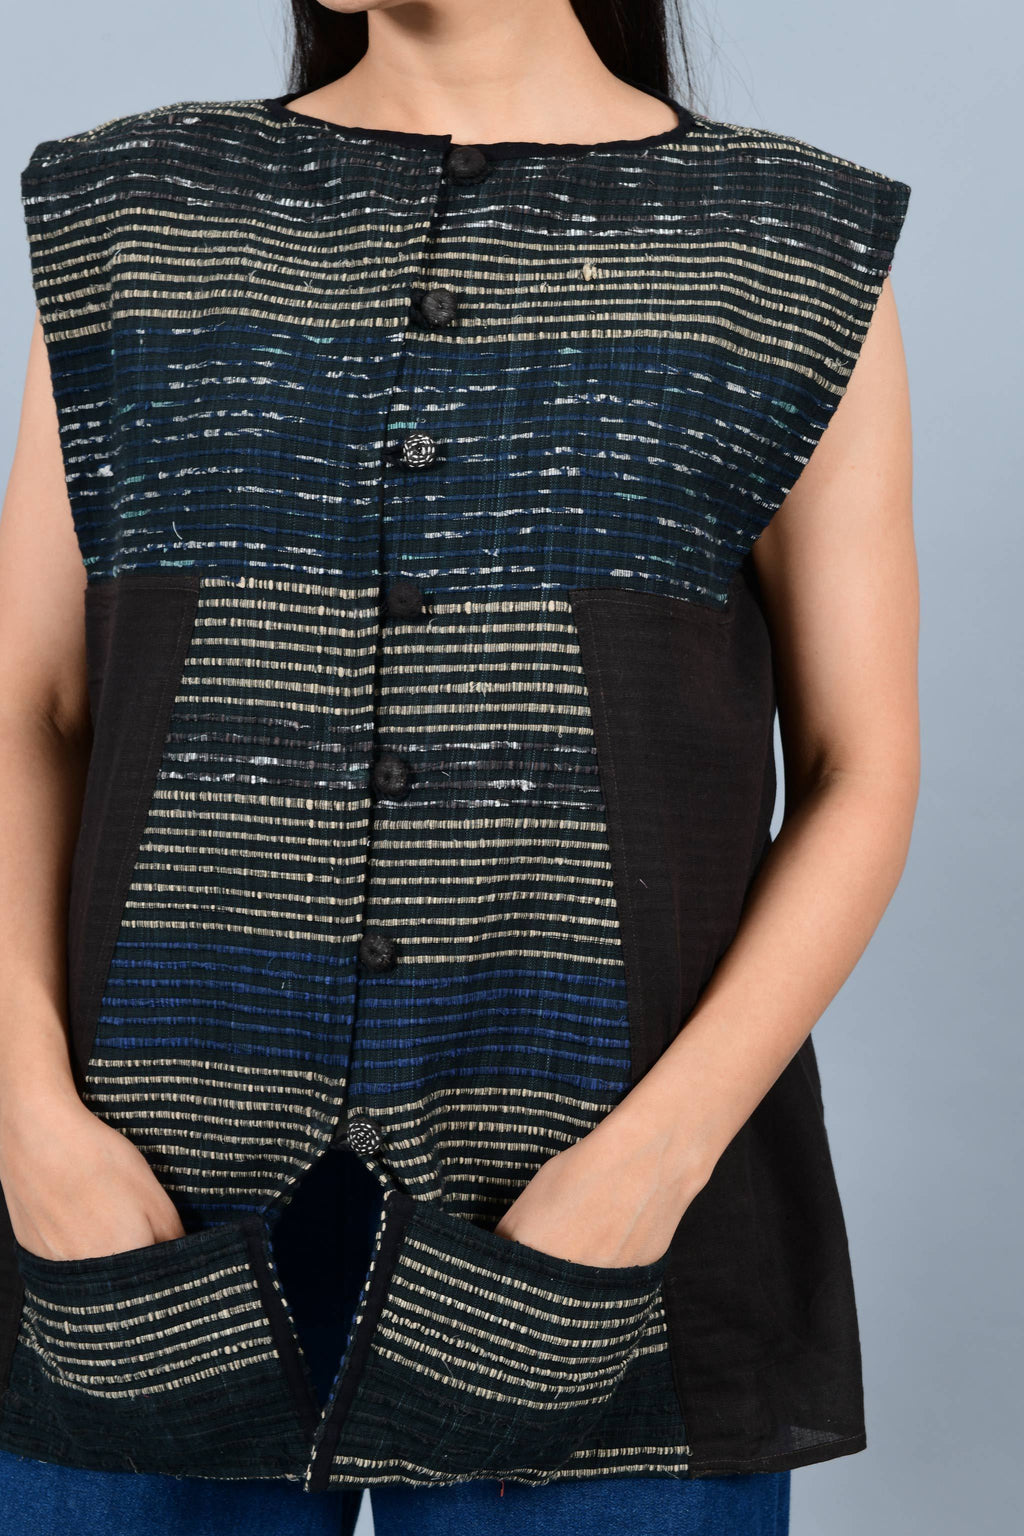 Front close up pose of an Indian Womenswear female model wearing black upcycled kimono inspired sleeveless jacket made with handspun and handwoven cotton by Cotton Rack.